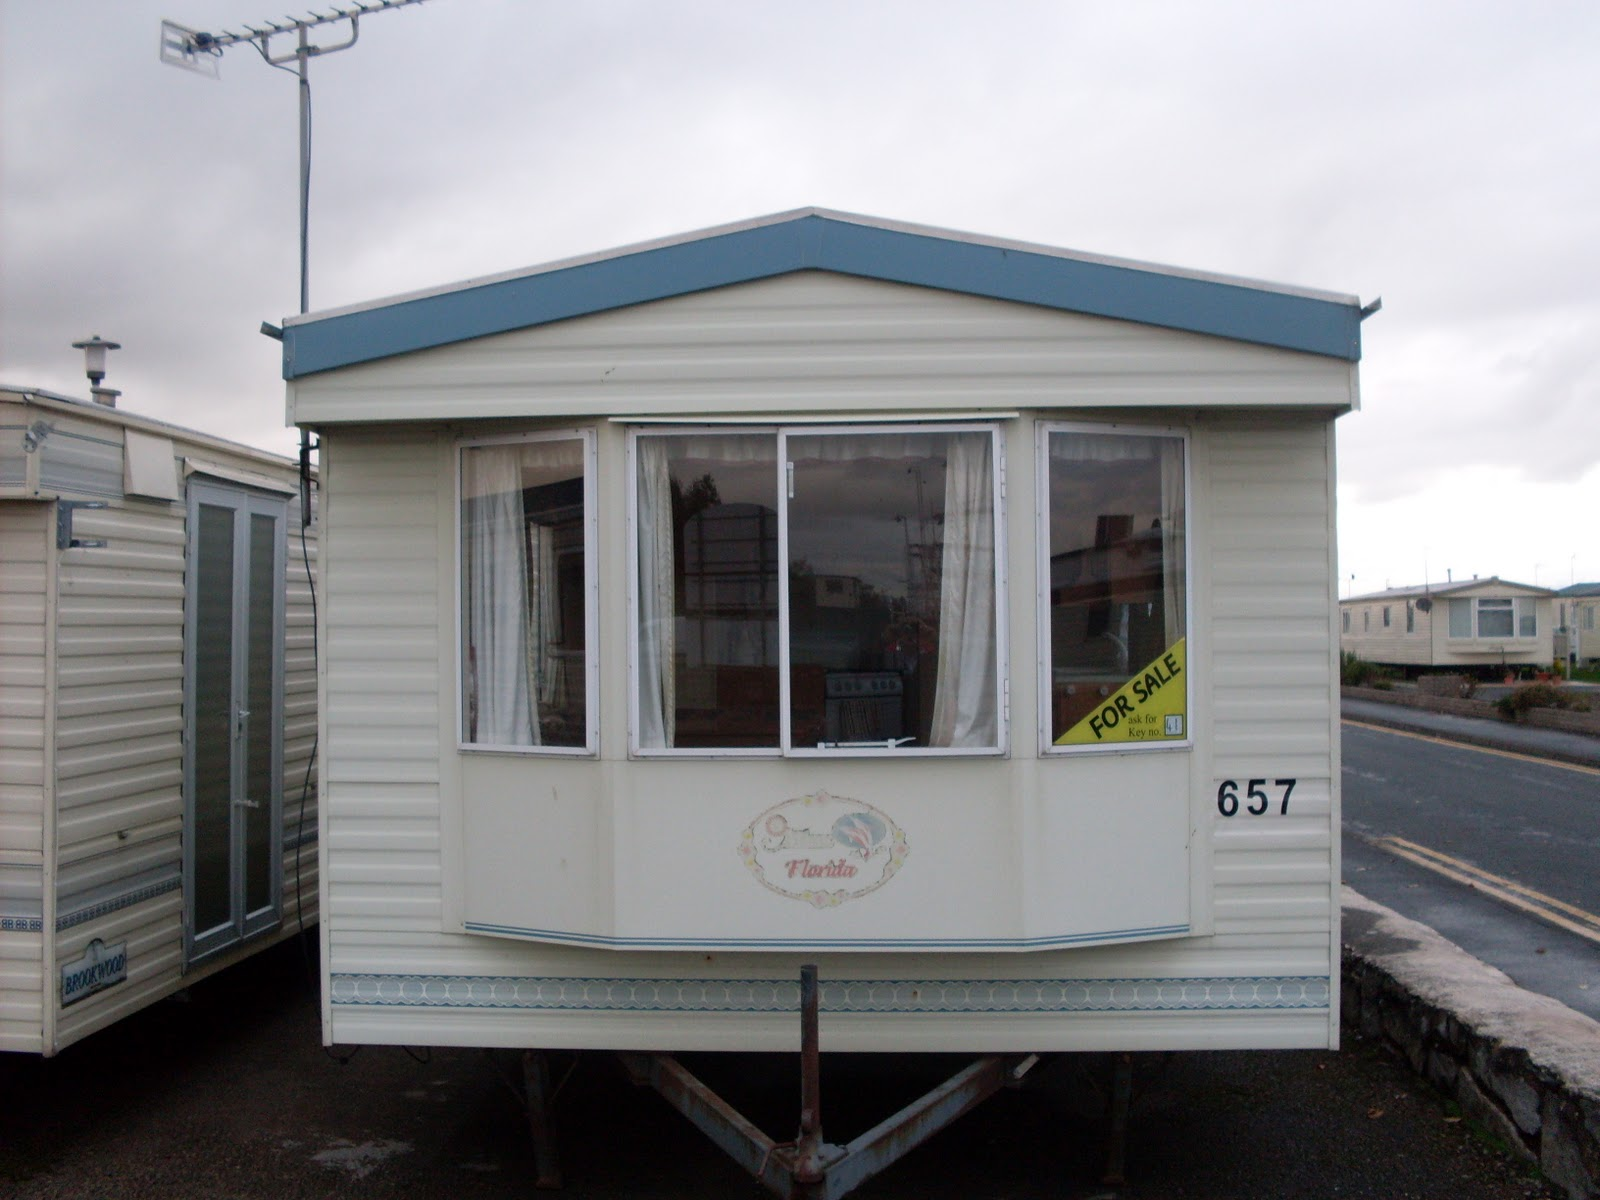 Perfect Edward Leisure Park Towyn Top 20 Caravans